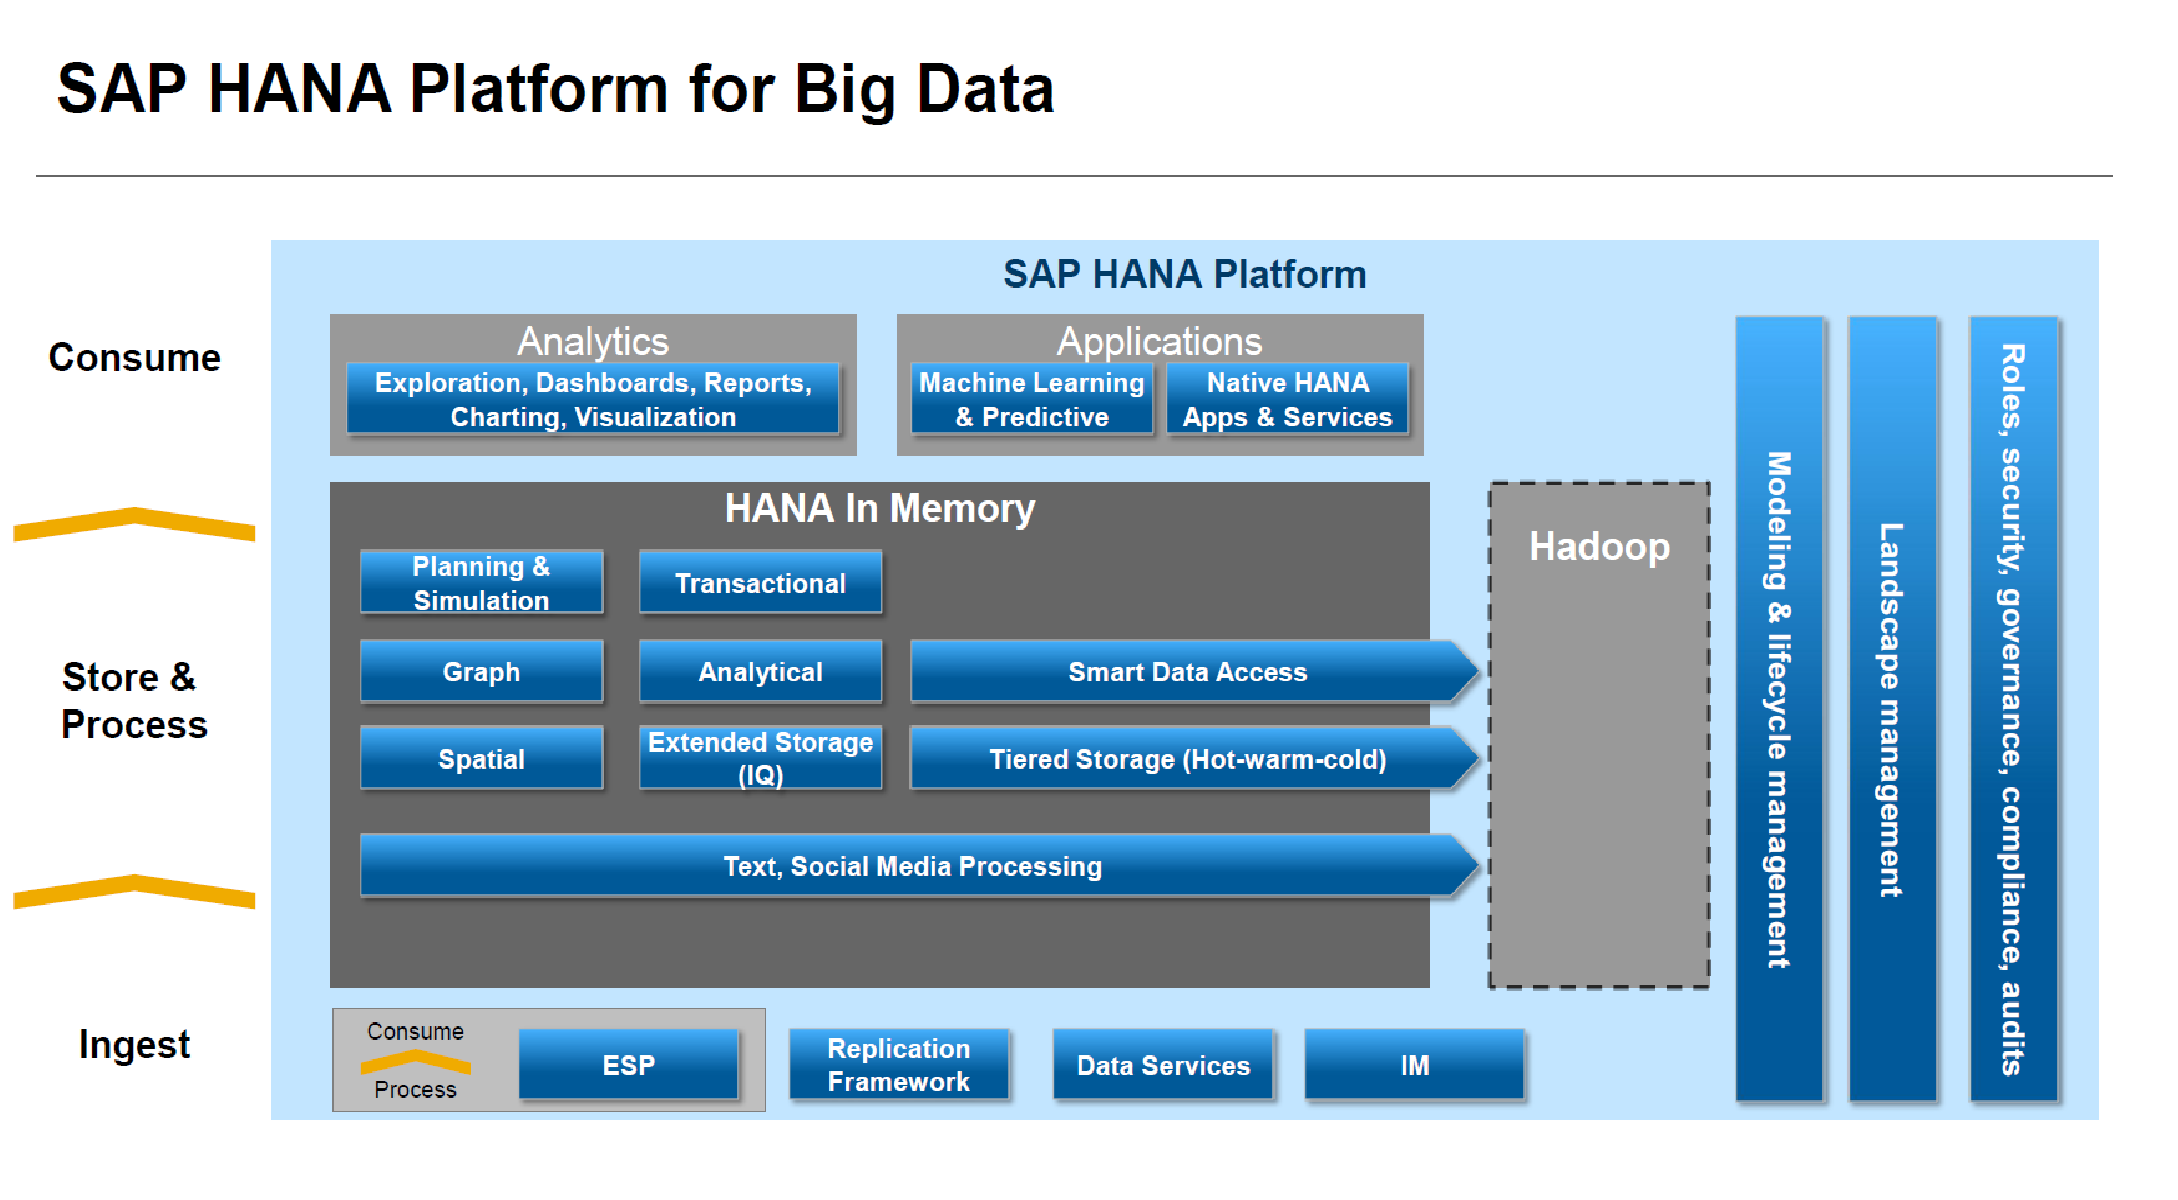 SAP_HANA_Platform_for_Big_Data.png